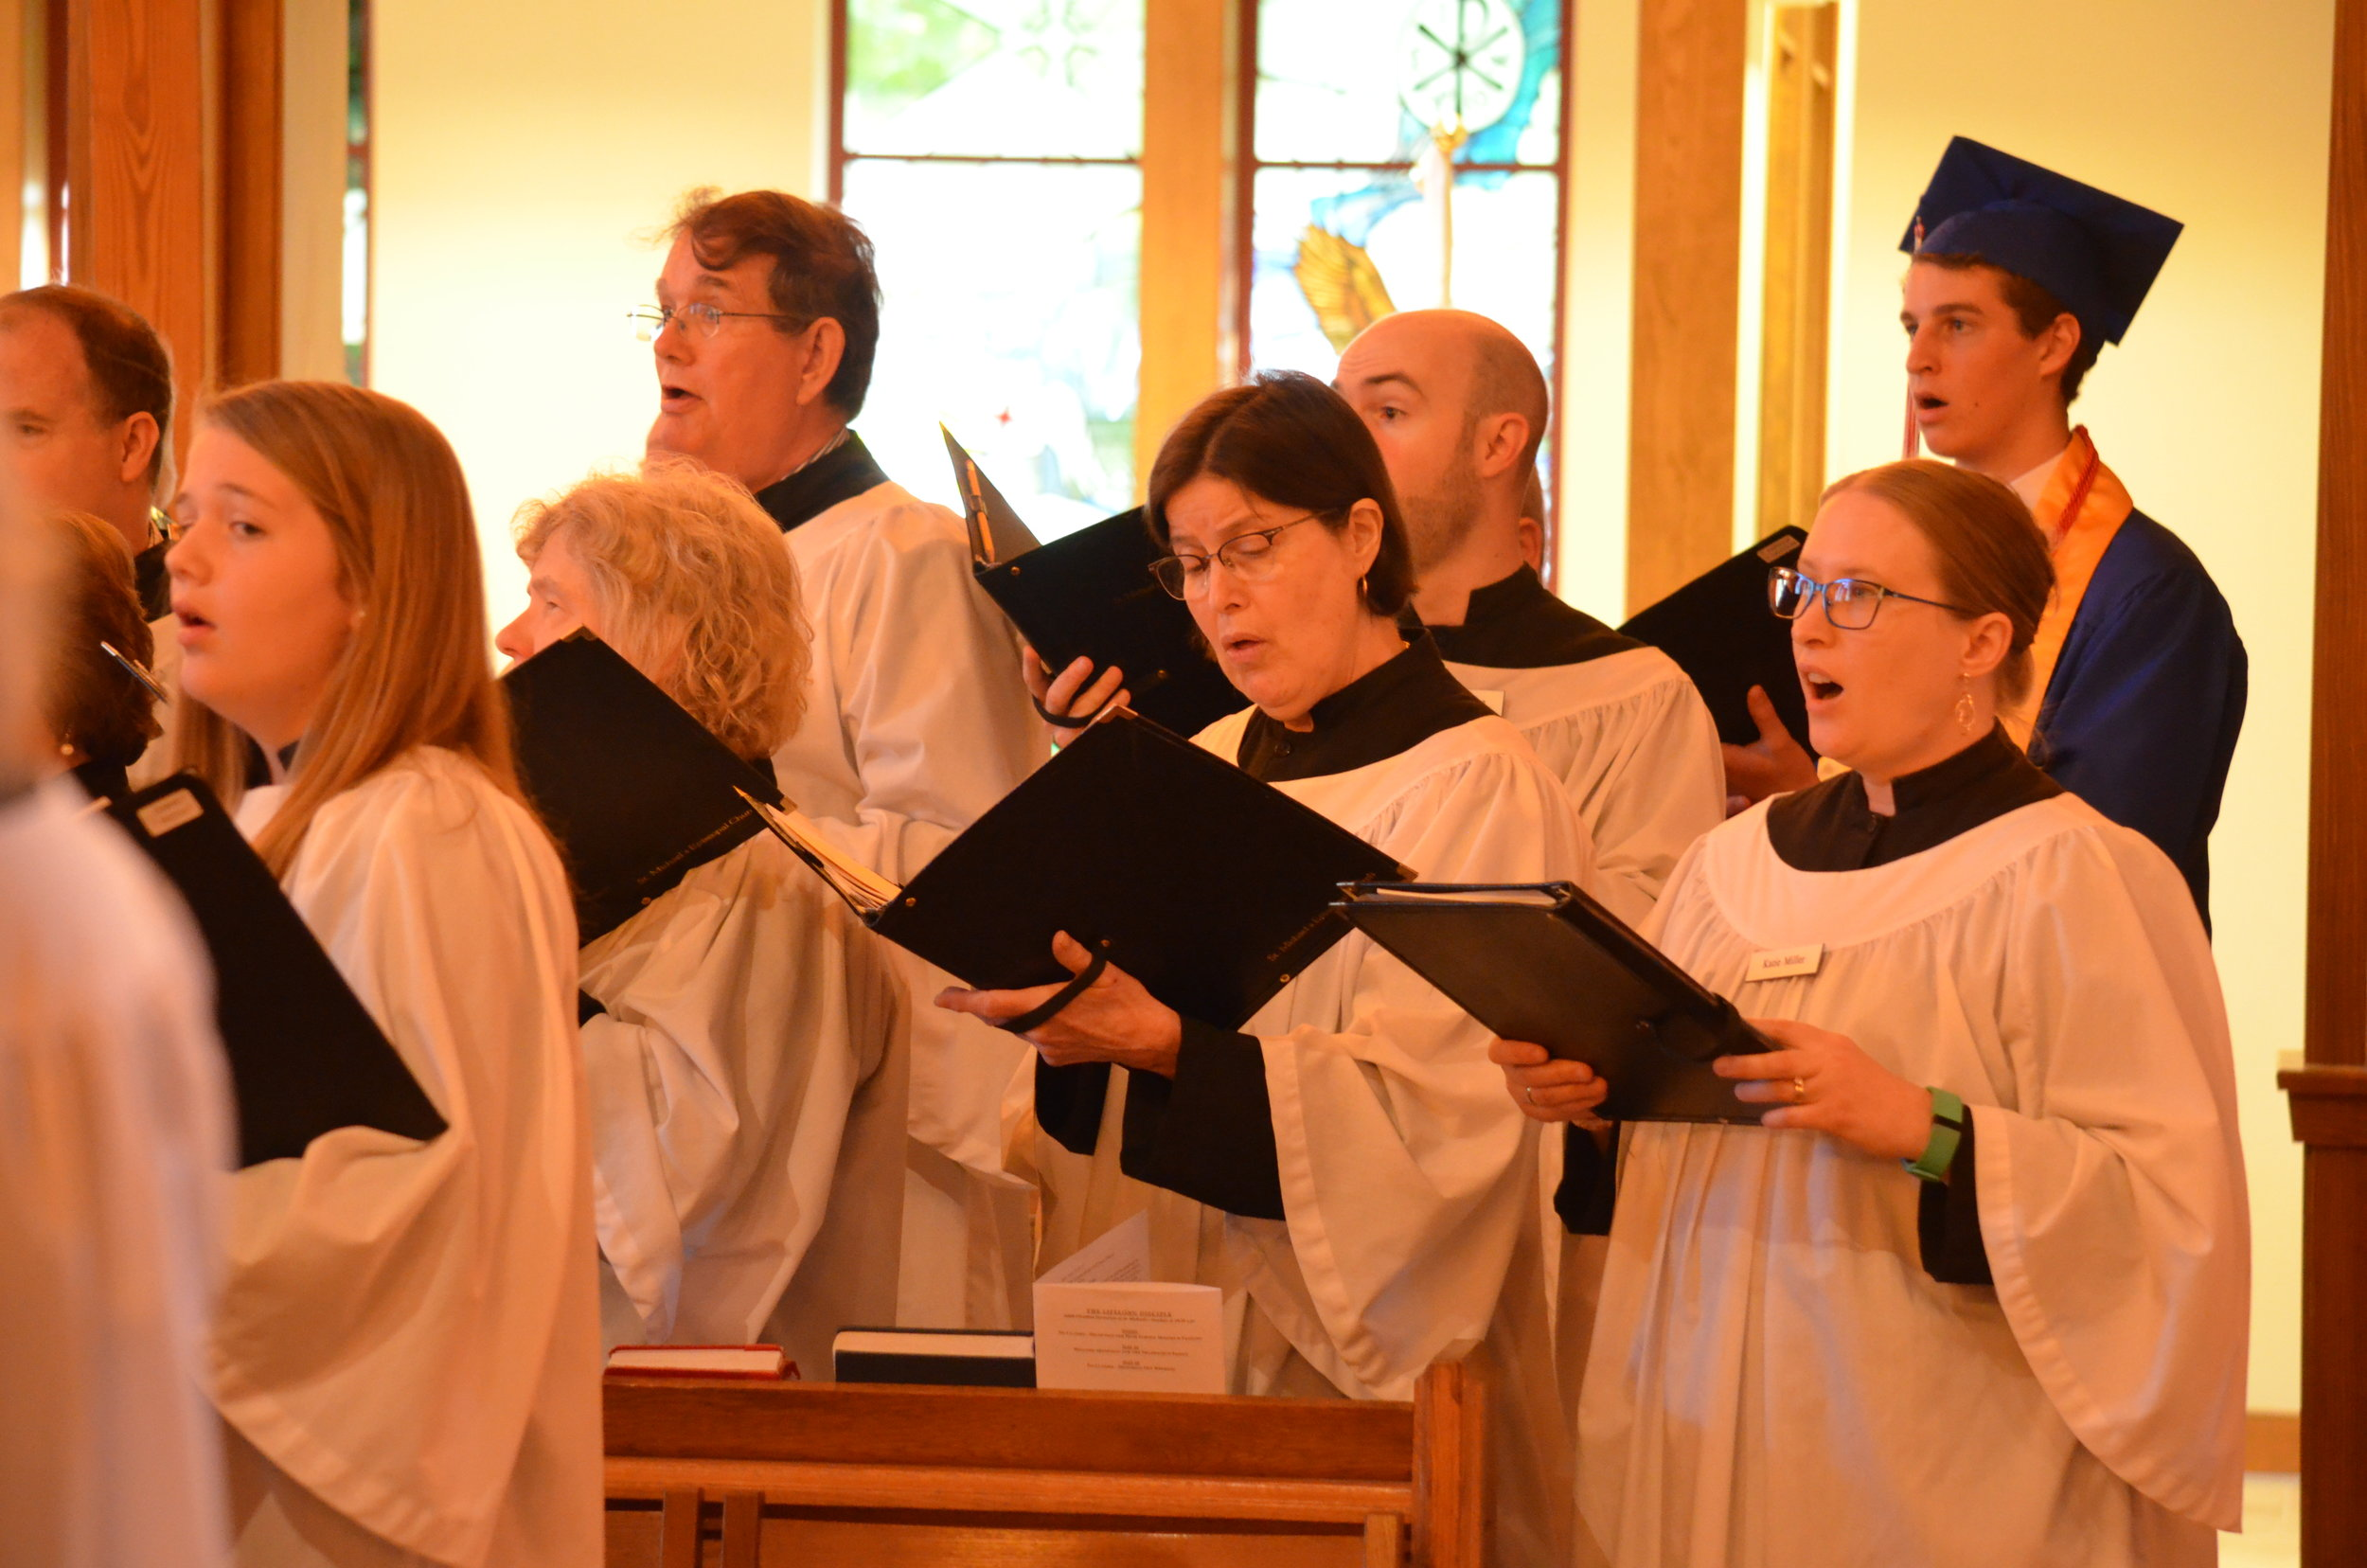 The Adult Choir of St. Michael's Episcopal Church, Raleigh, NC